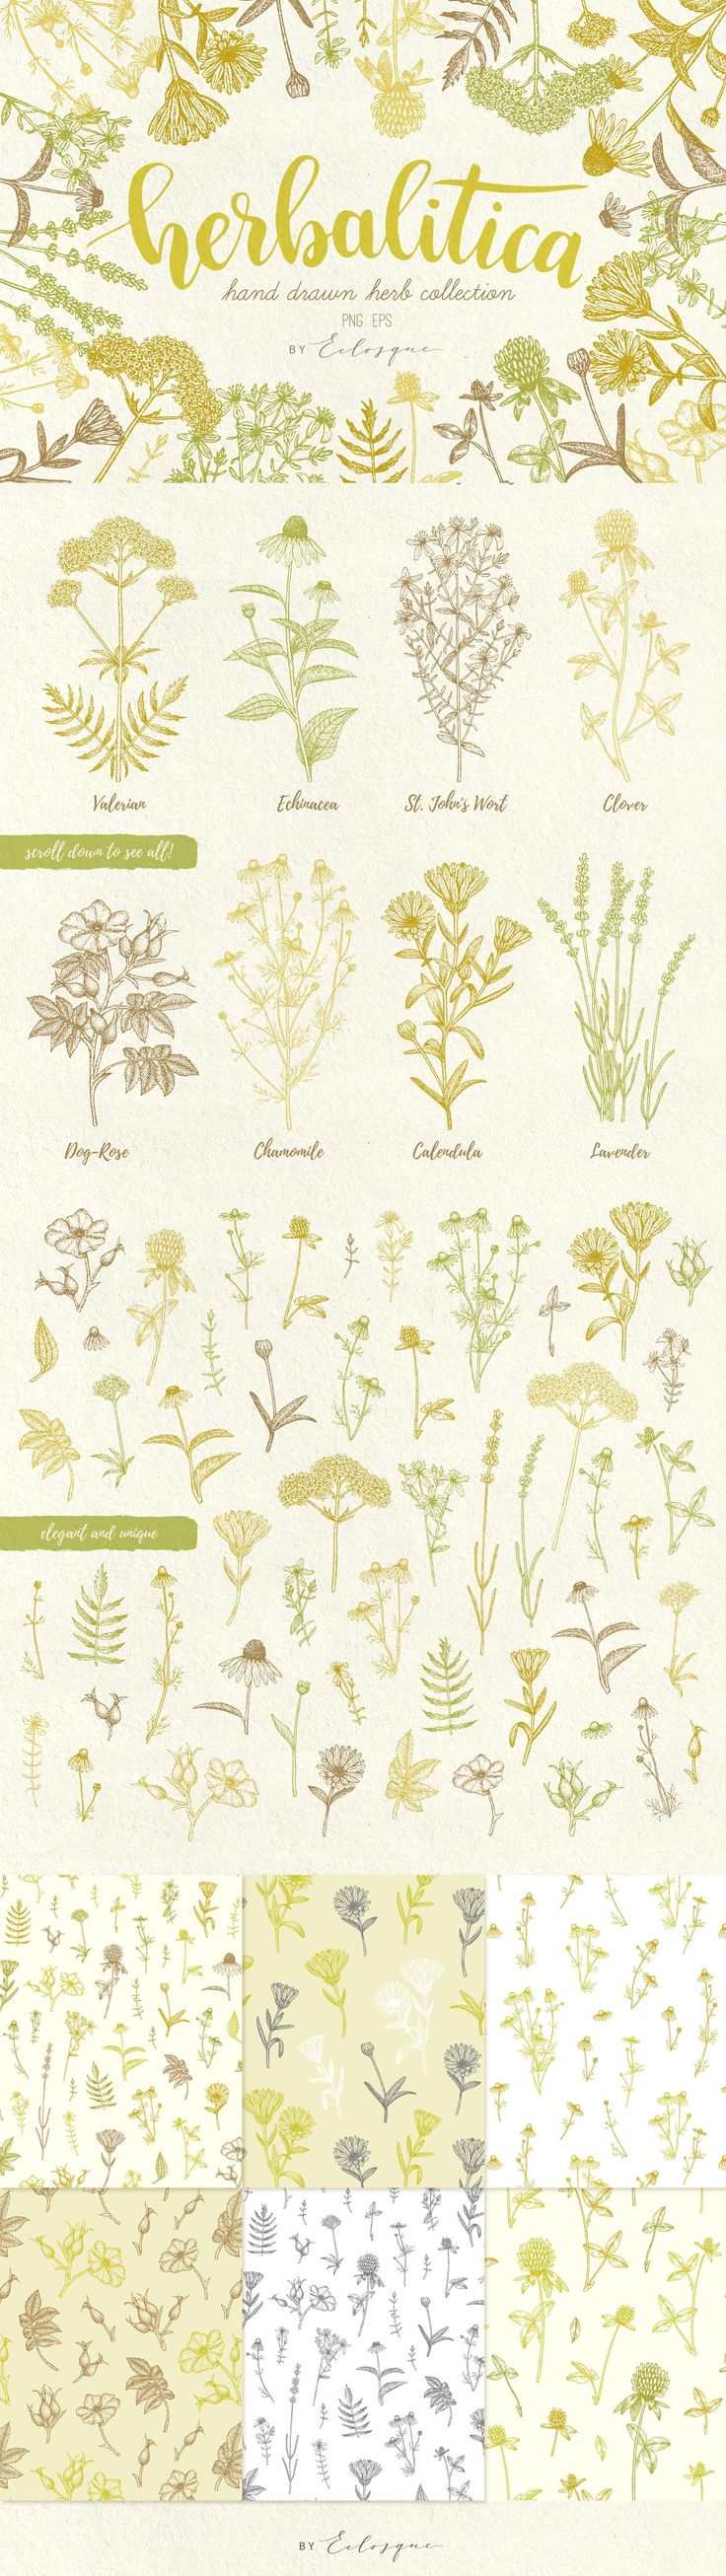 Herbalitica Vintage Plants hand drawn medicinal herb collection, it includes 8 unique sketched plants - Valerian, Echinacea, St. John's Wort, Clover, Dog-Rose, Chamomile, Calendula, Lavender. In order to make designing easier, I have also included 50 carefully separated elements from the original plants.